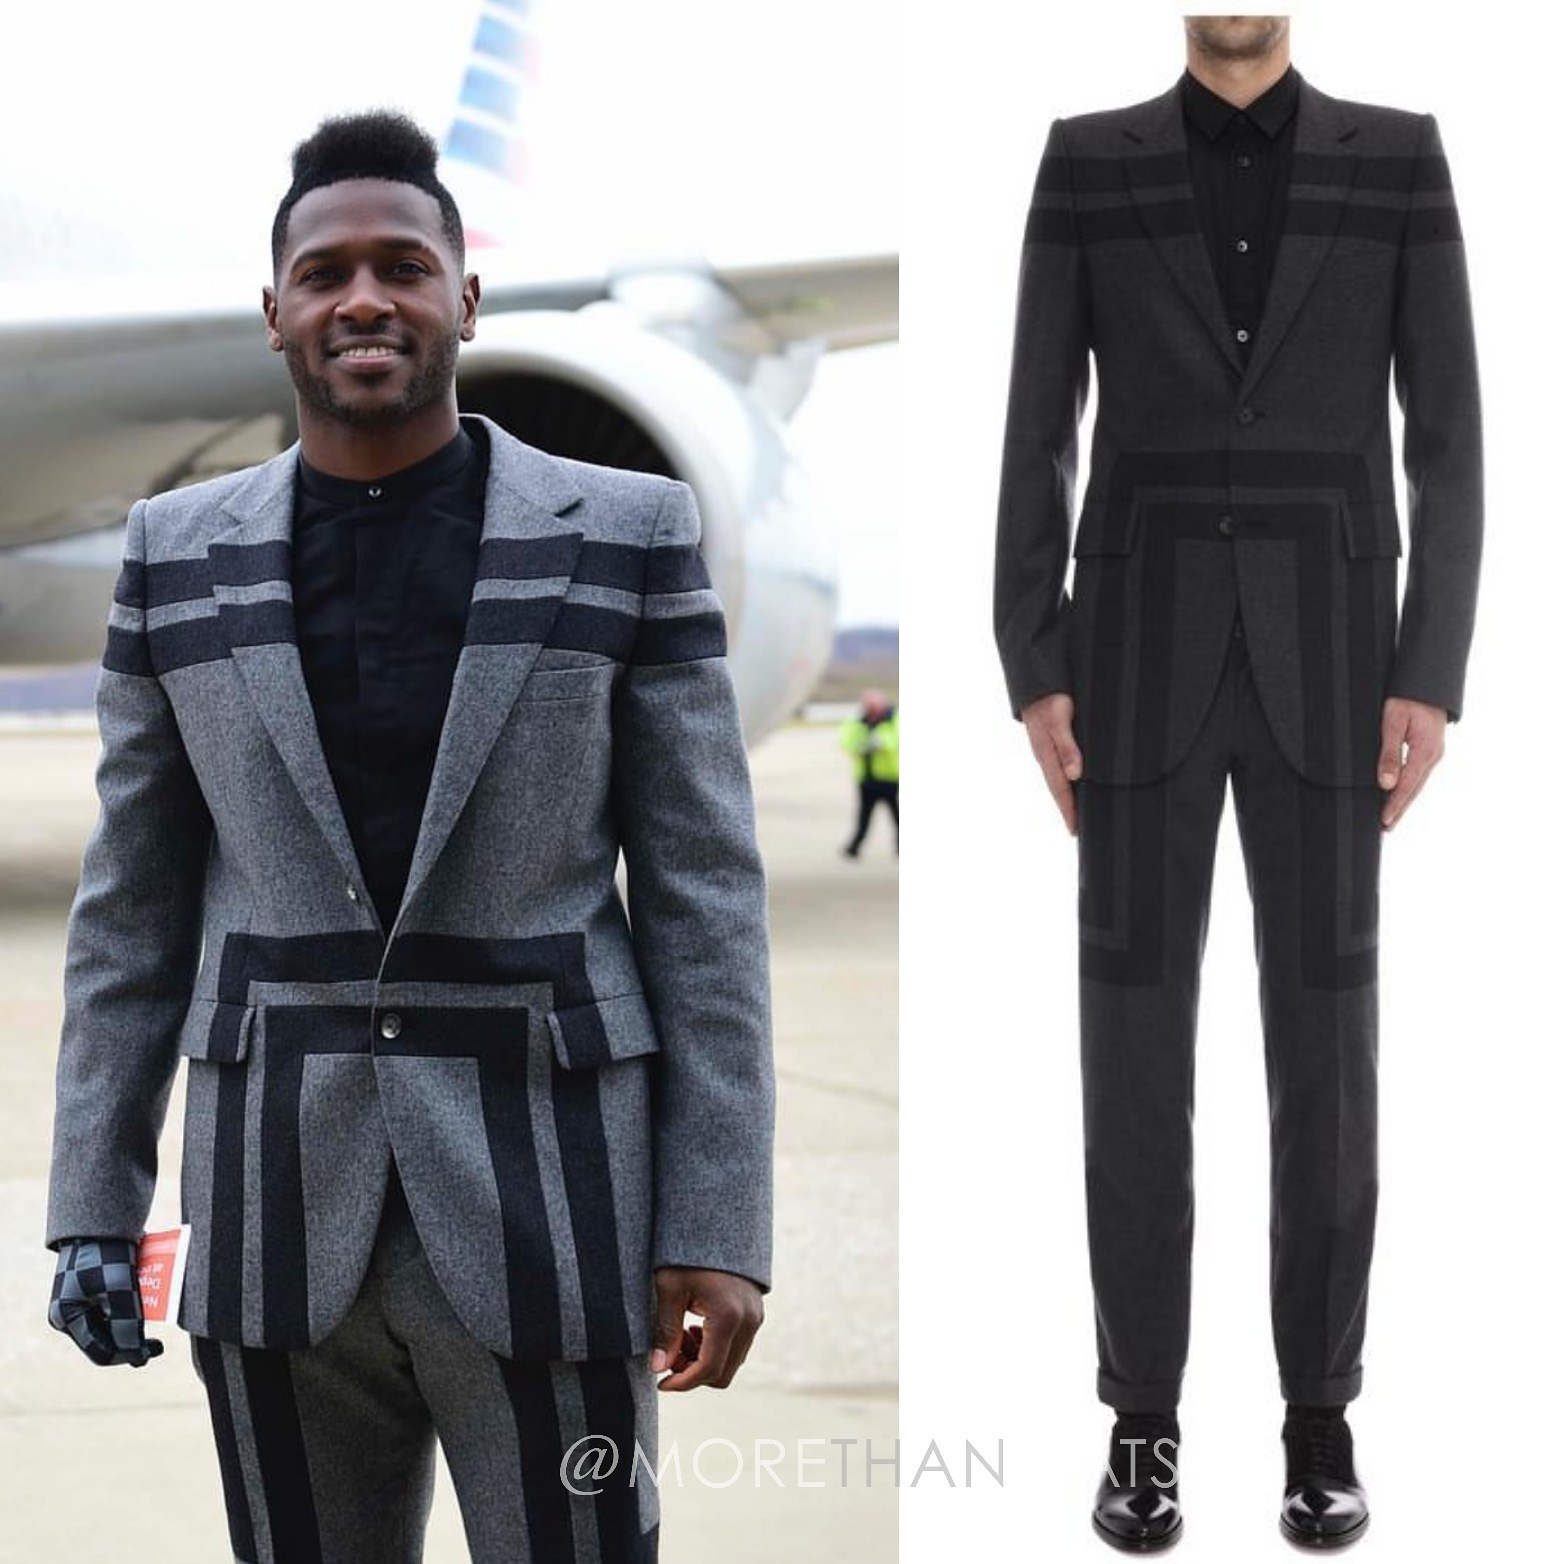 Antonio Brown's Alexander Mcqueen F/W '14 Geometric Print Mens Fashion Suit